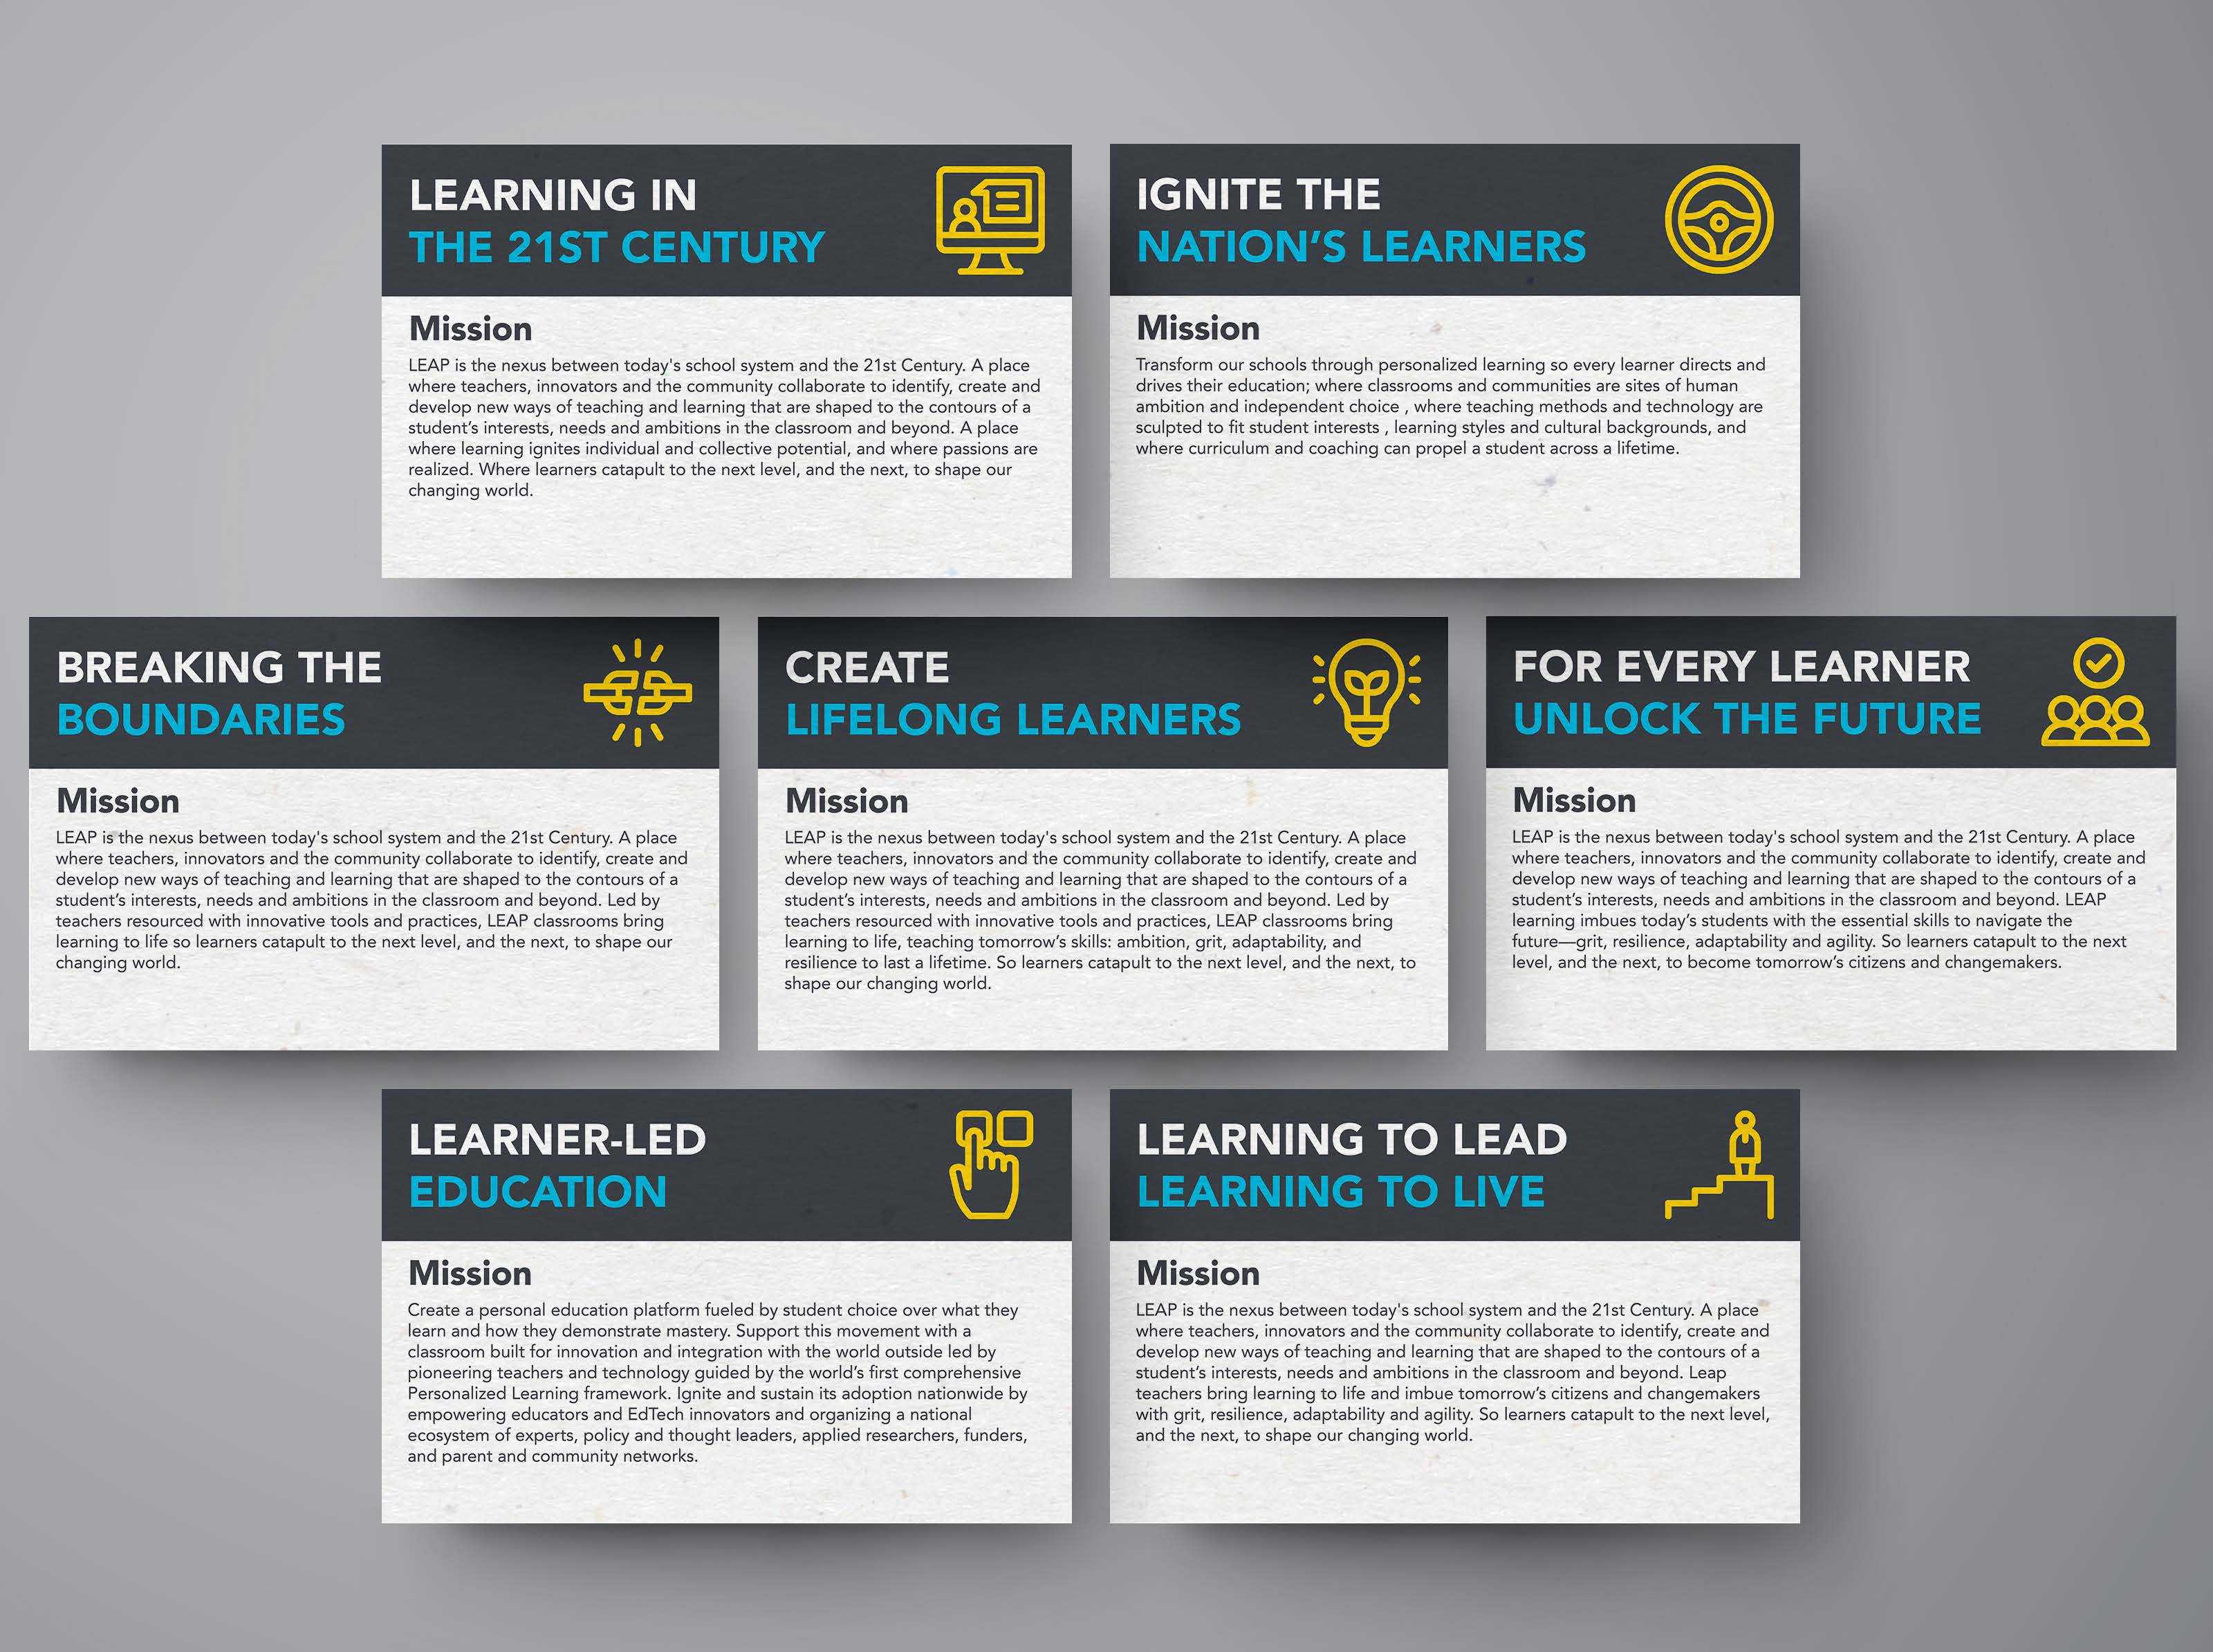 Vision statements for Leap Innovations.